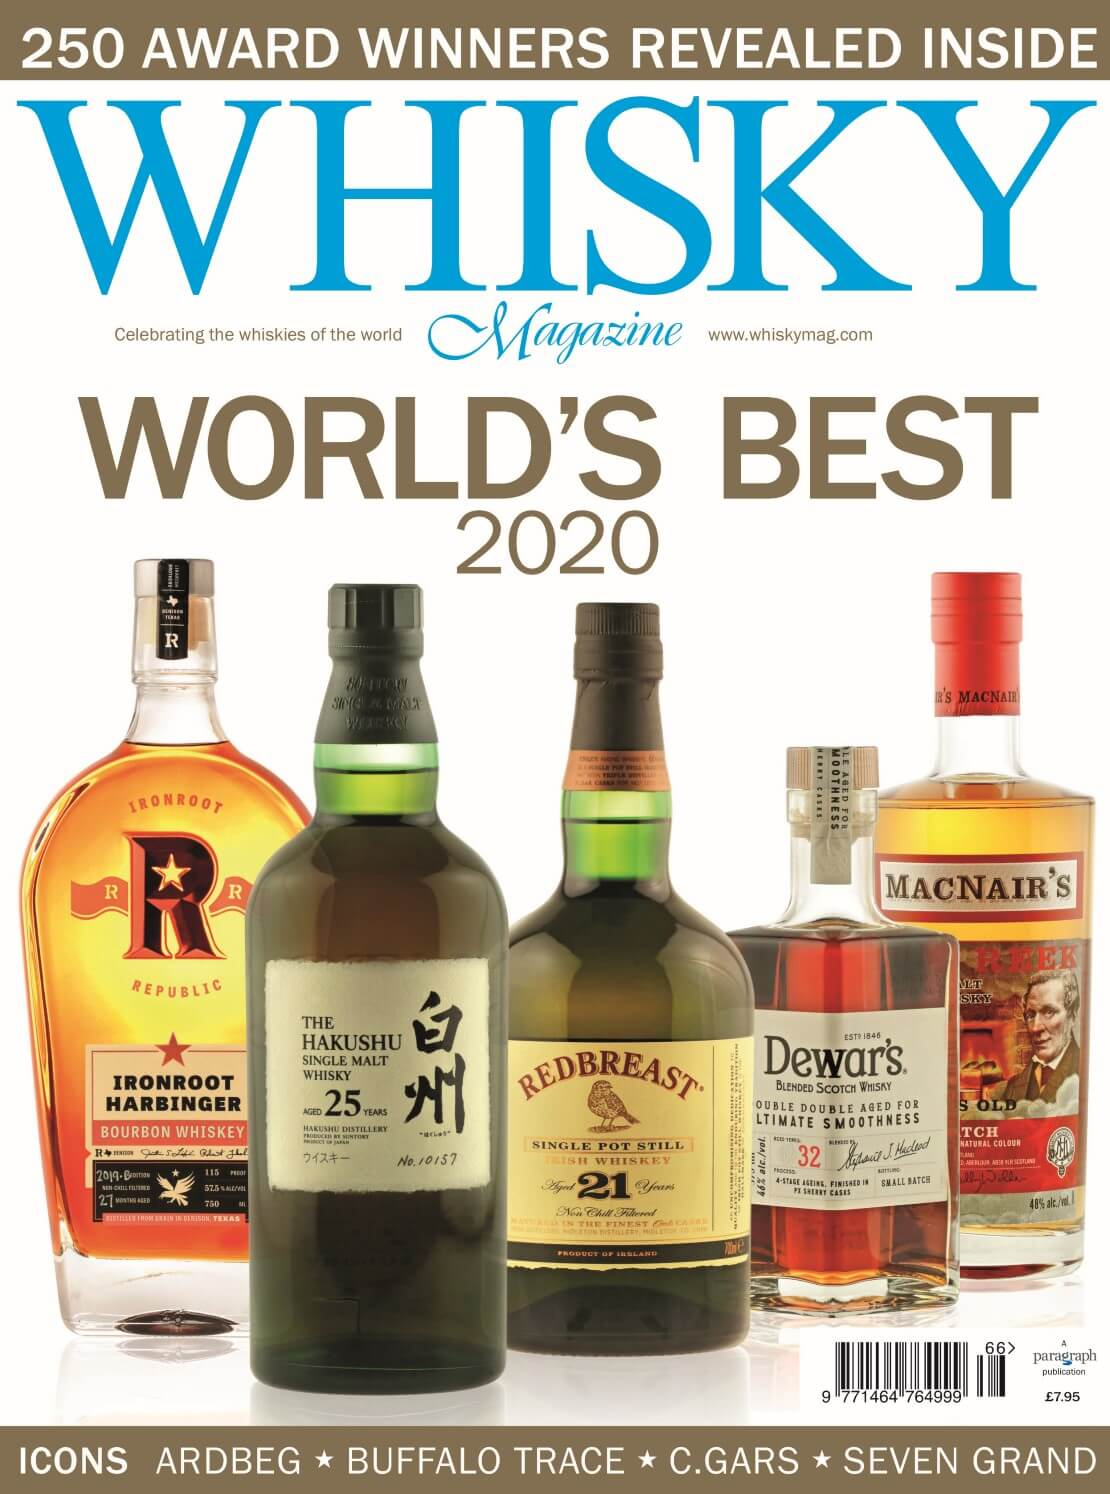 Whisky Magazine presents the World Whiskies Awards 2020 results